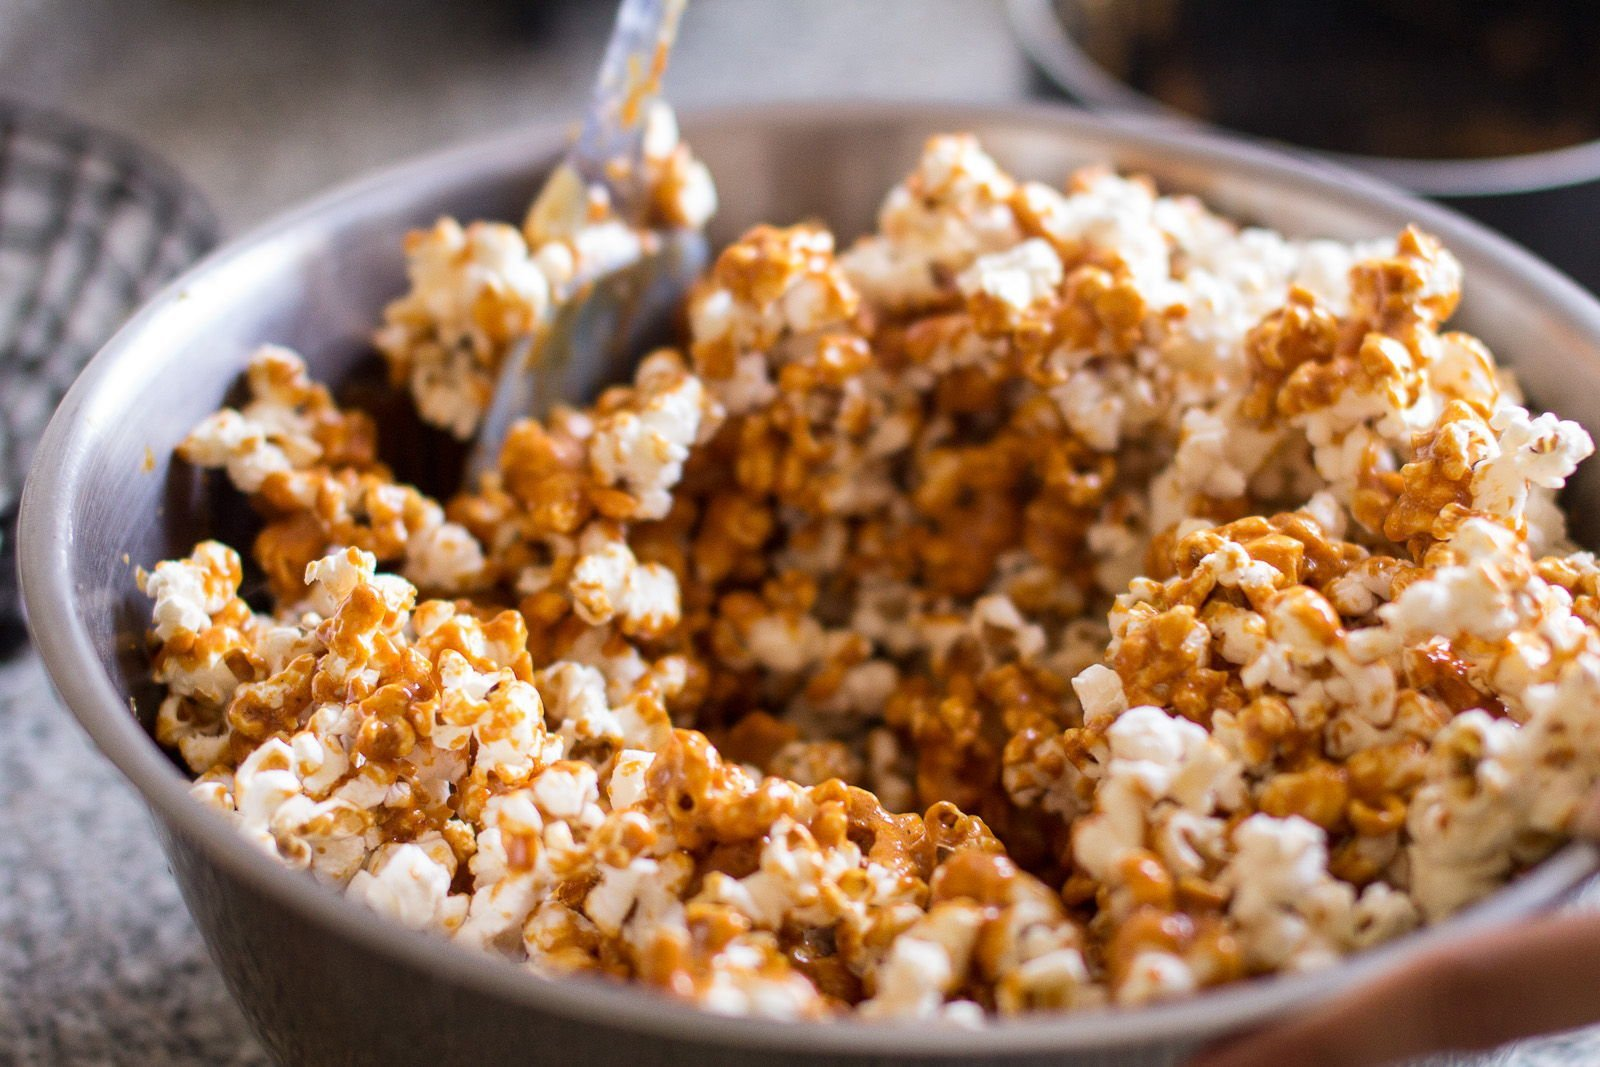 Chili Caramel Popcorn for the Food Swap - Indiaphile